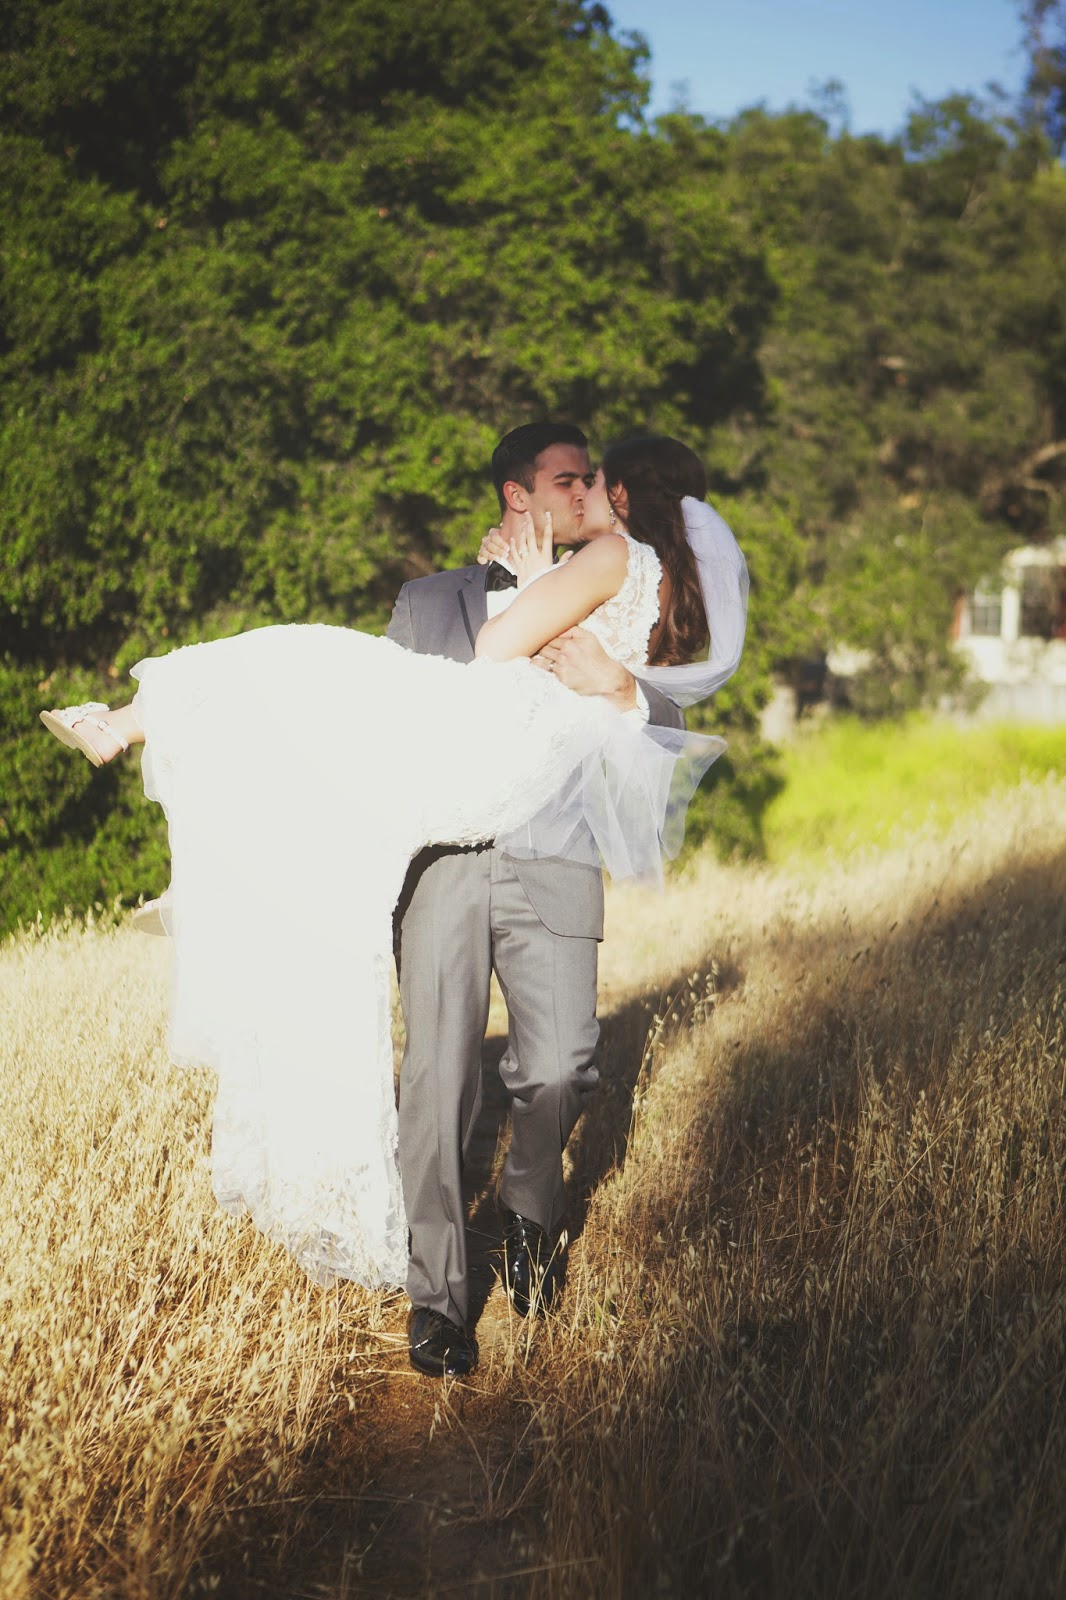 wheat field wedding photo